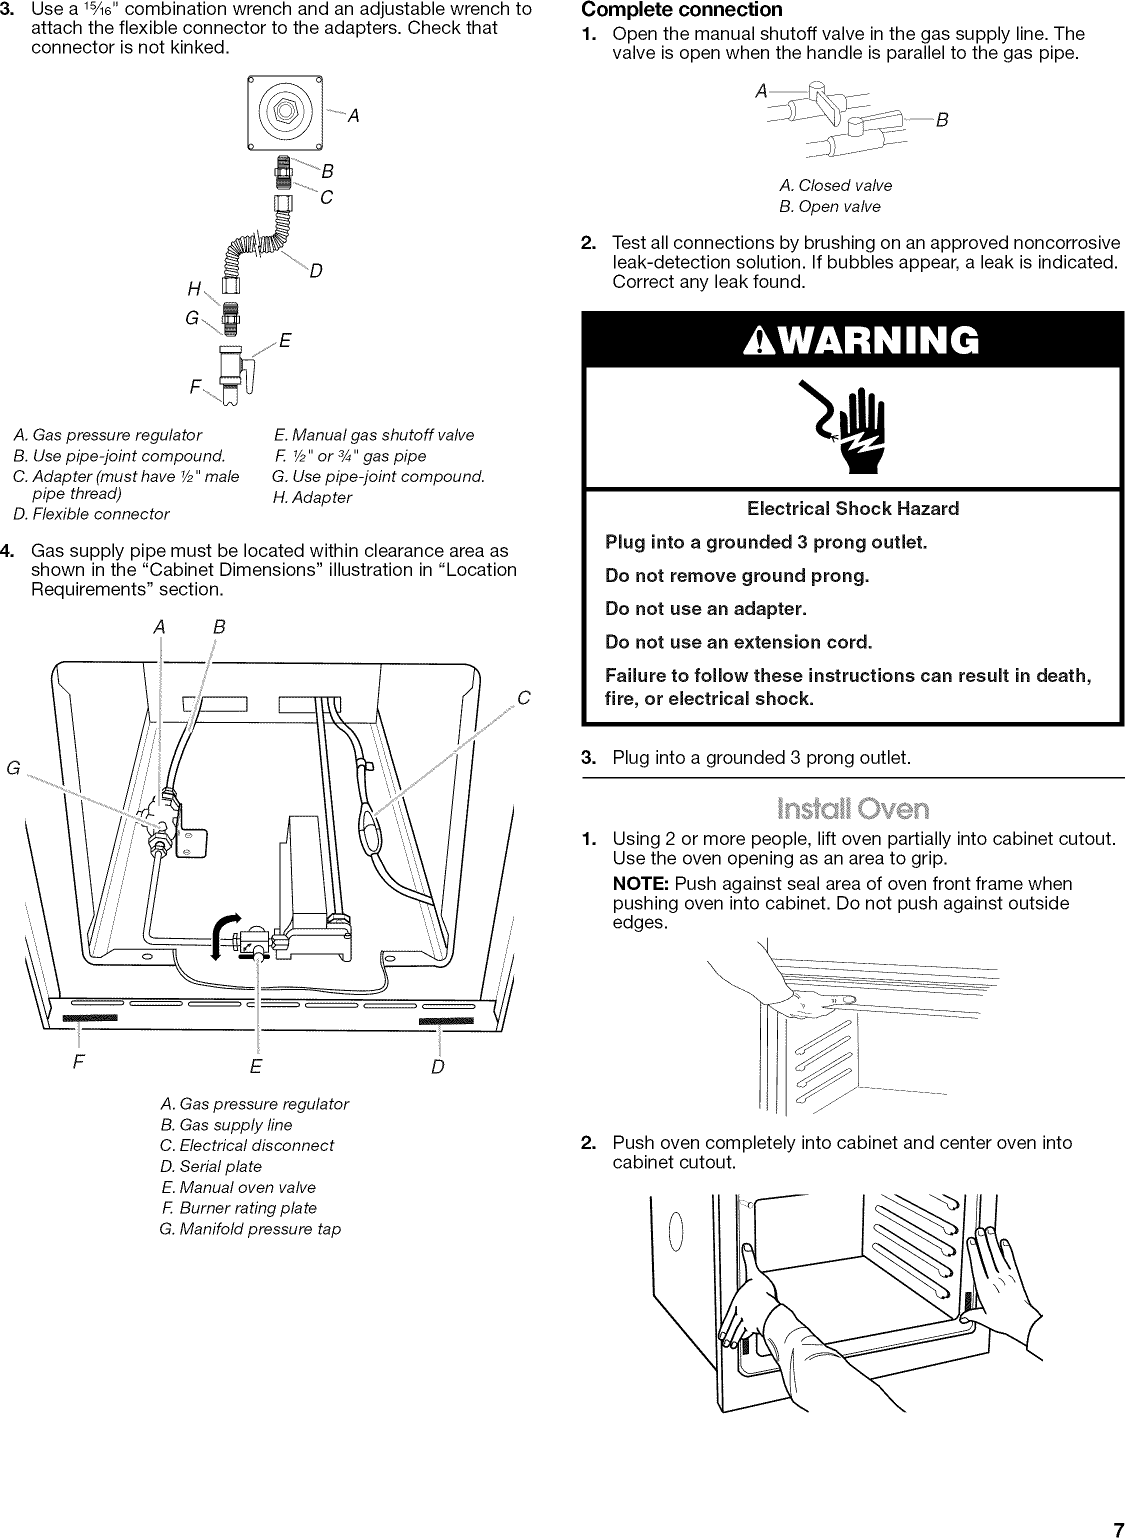 Maytag Cwg3100aas13 User Manual 24 Built In Gas Oven Manuals And Igniter Wiring Diagram Page 7 Of 12